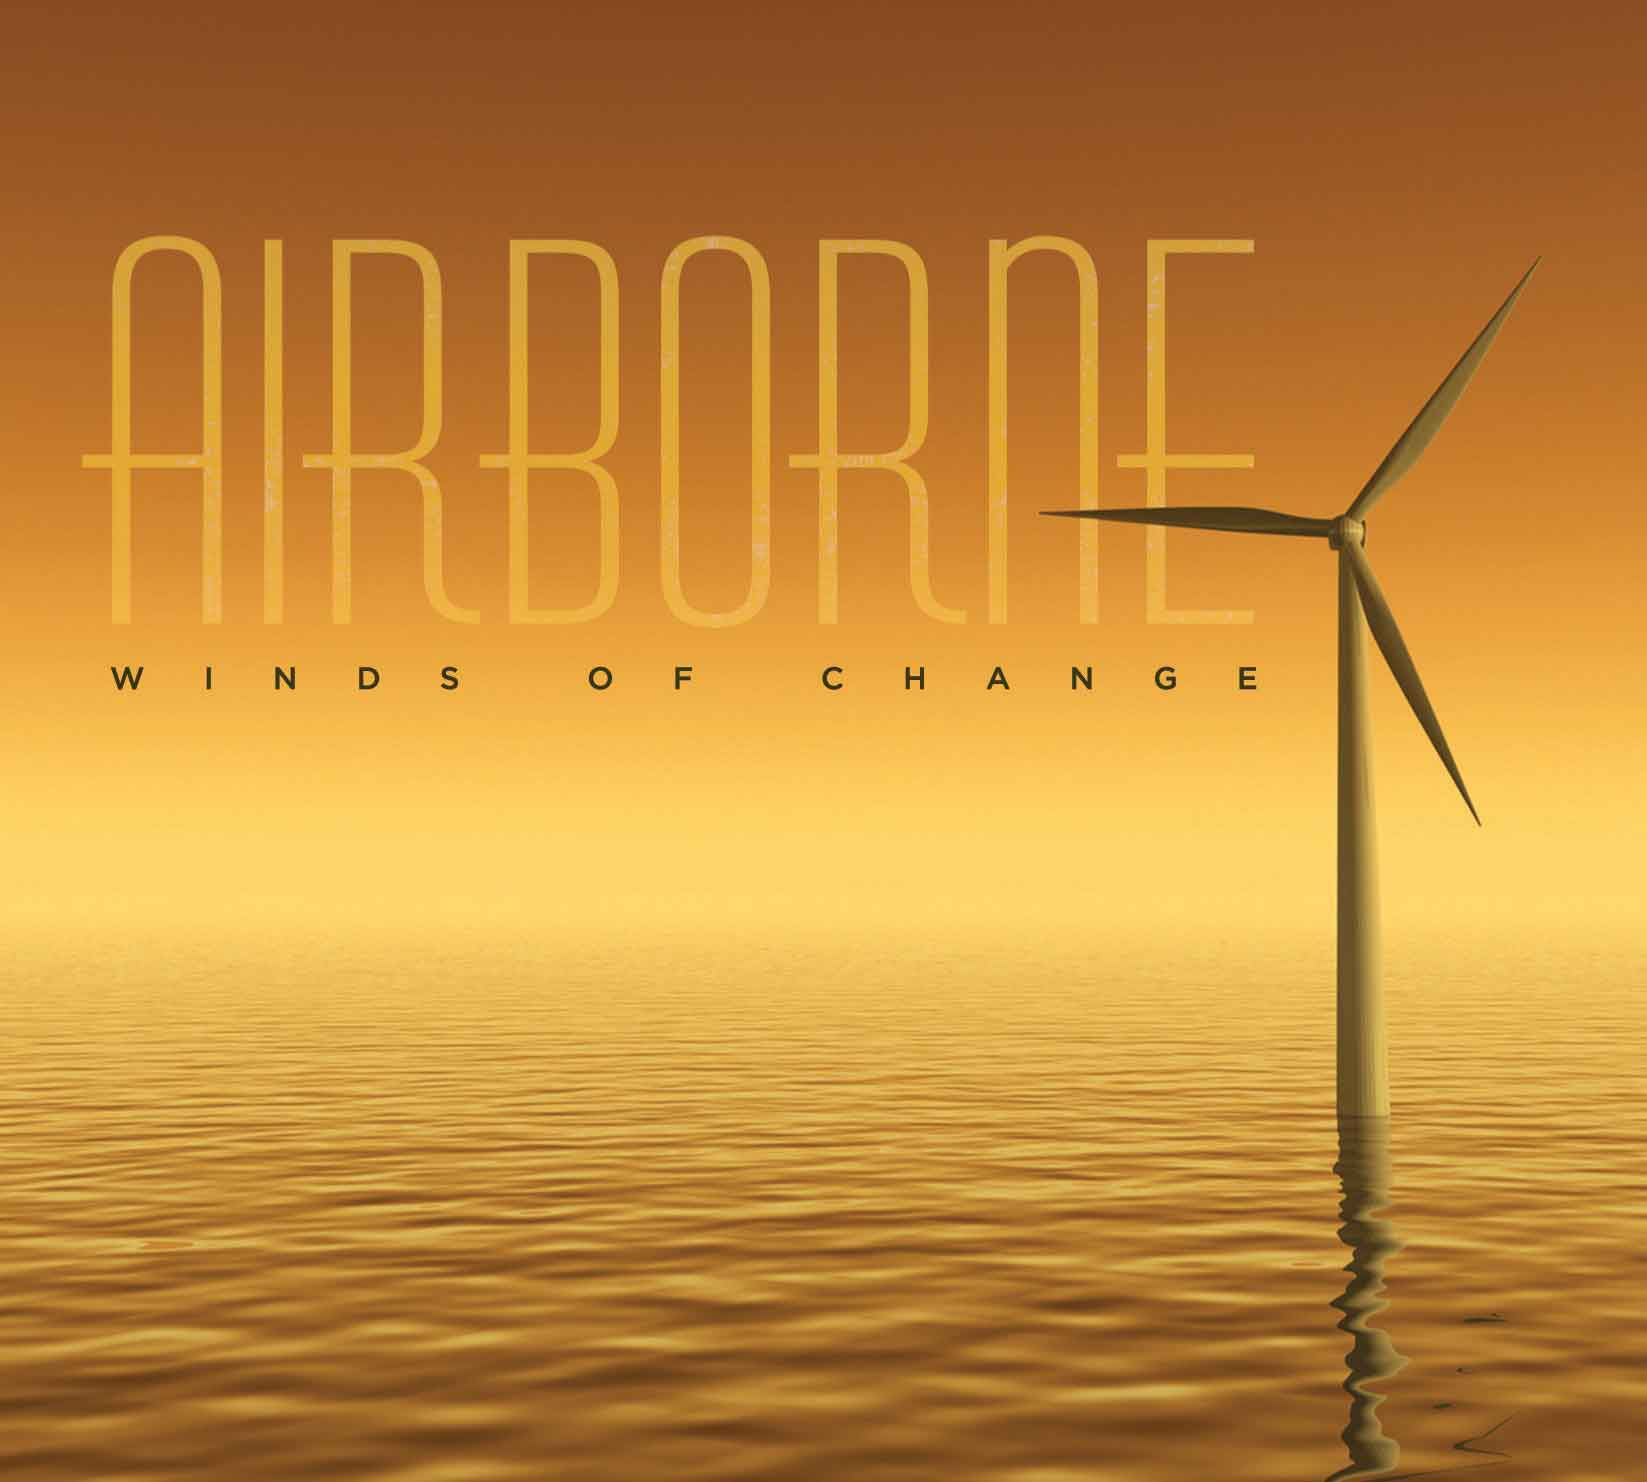 Winds of Change CD Cover